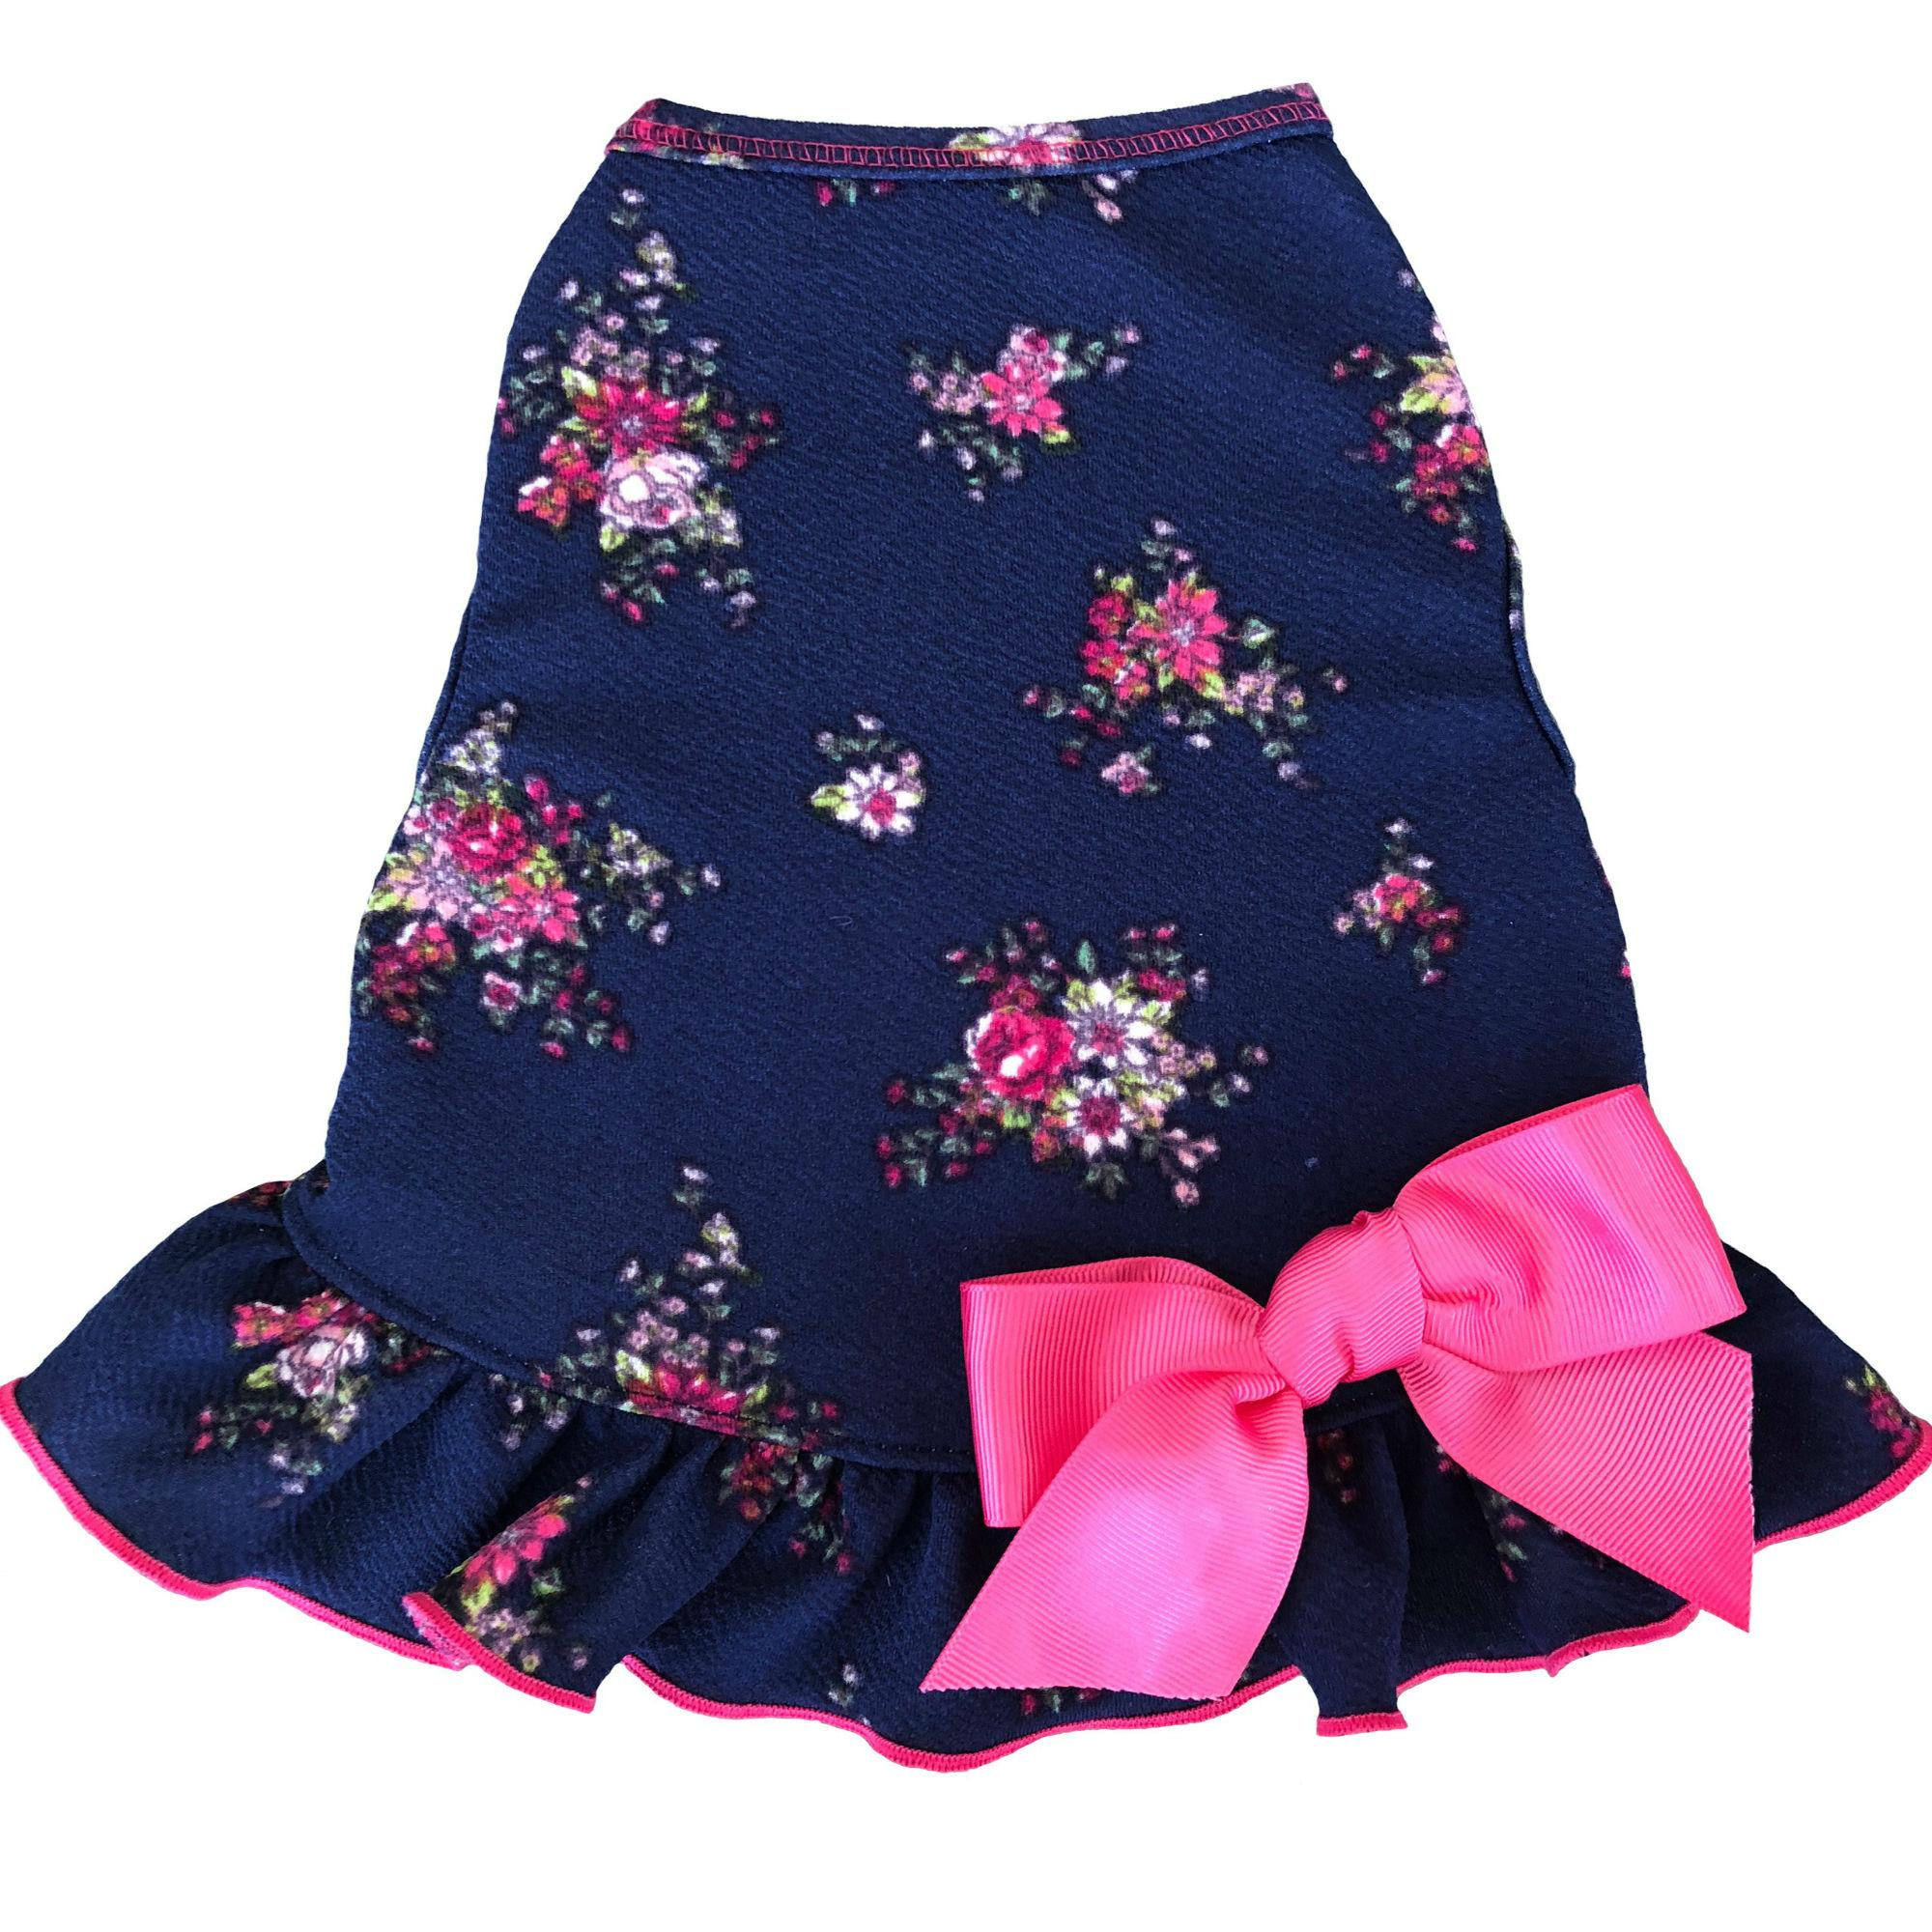 Vintage Floral Dog Dress with Satin Bow - Navy